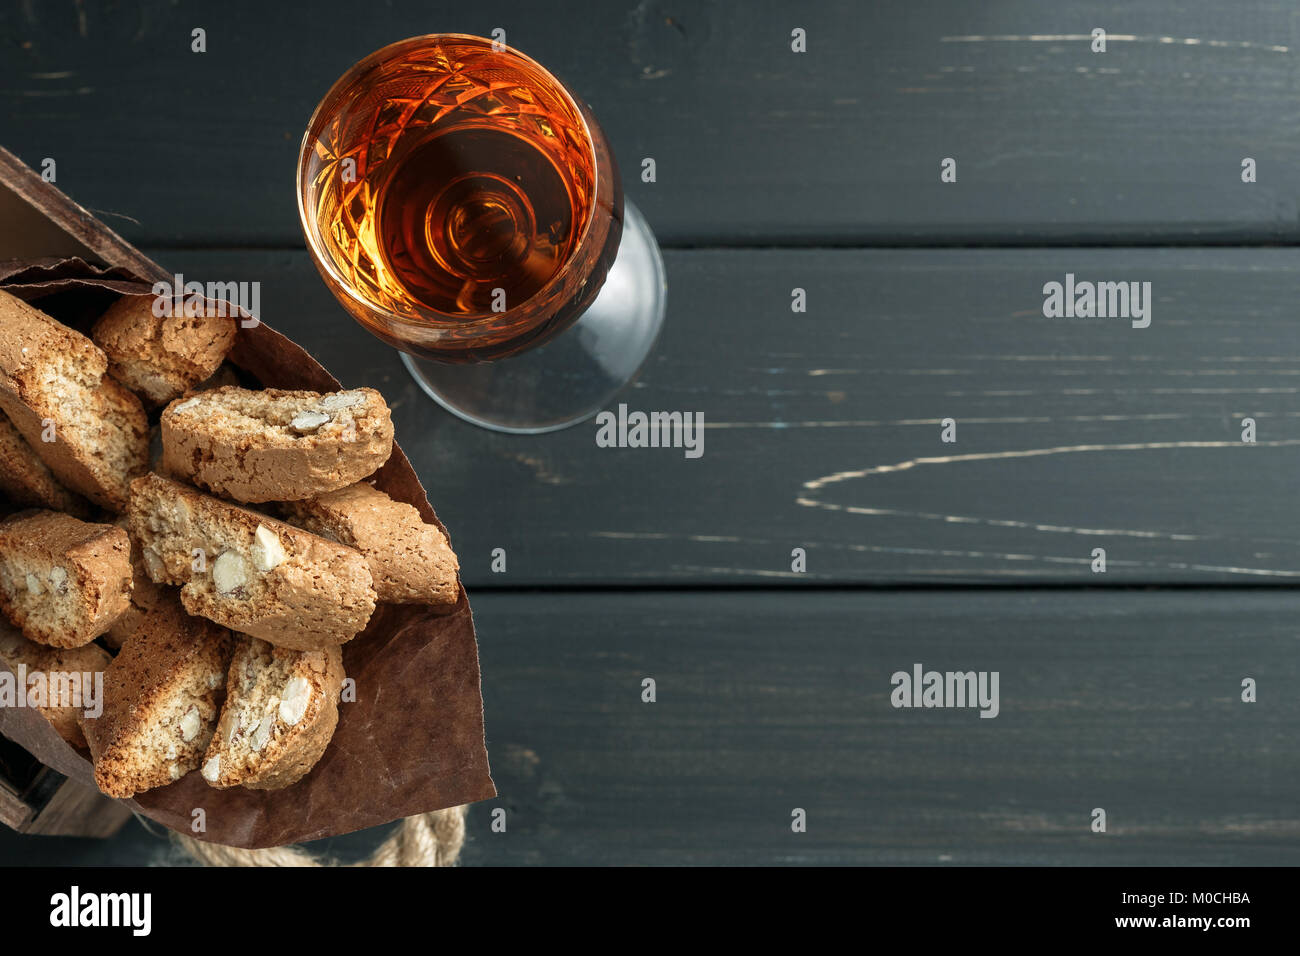 Italian cantuccini biscuits and a glass of sweet Vin Santo wine over wooden background - Stock Image